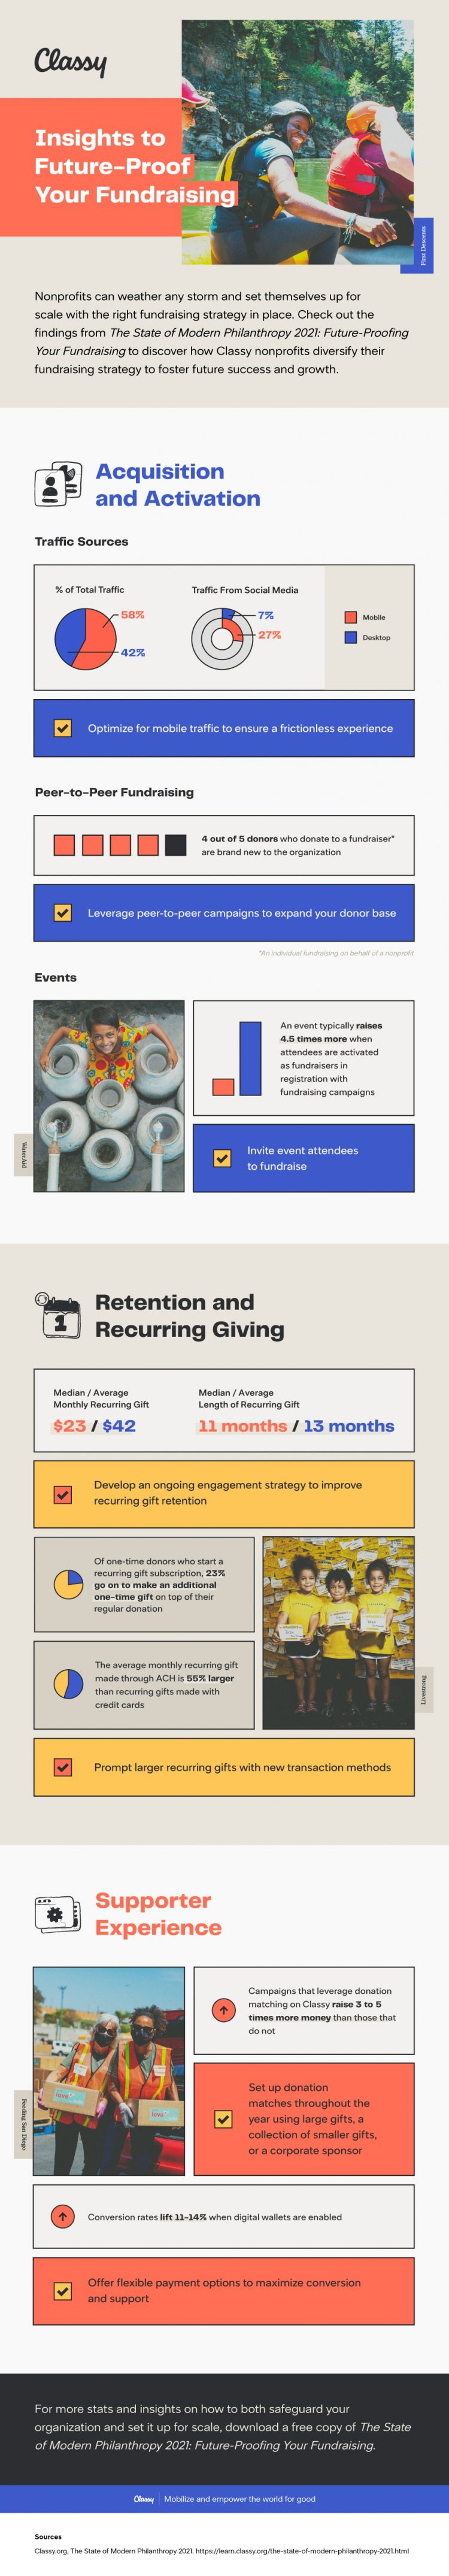 Insights to Future-Proof Your Fundraising Success